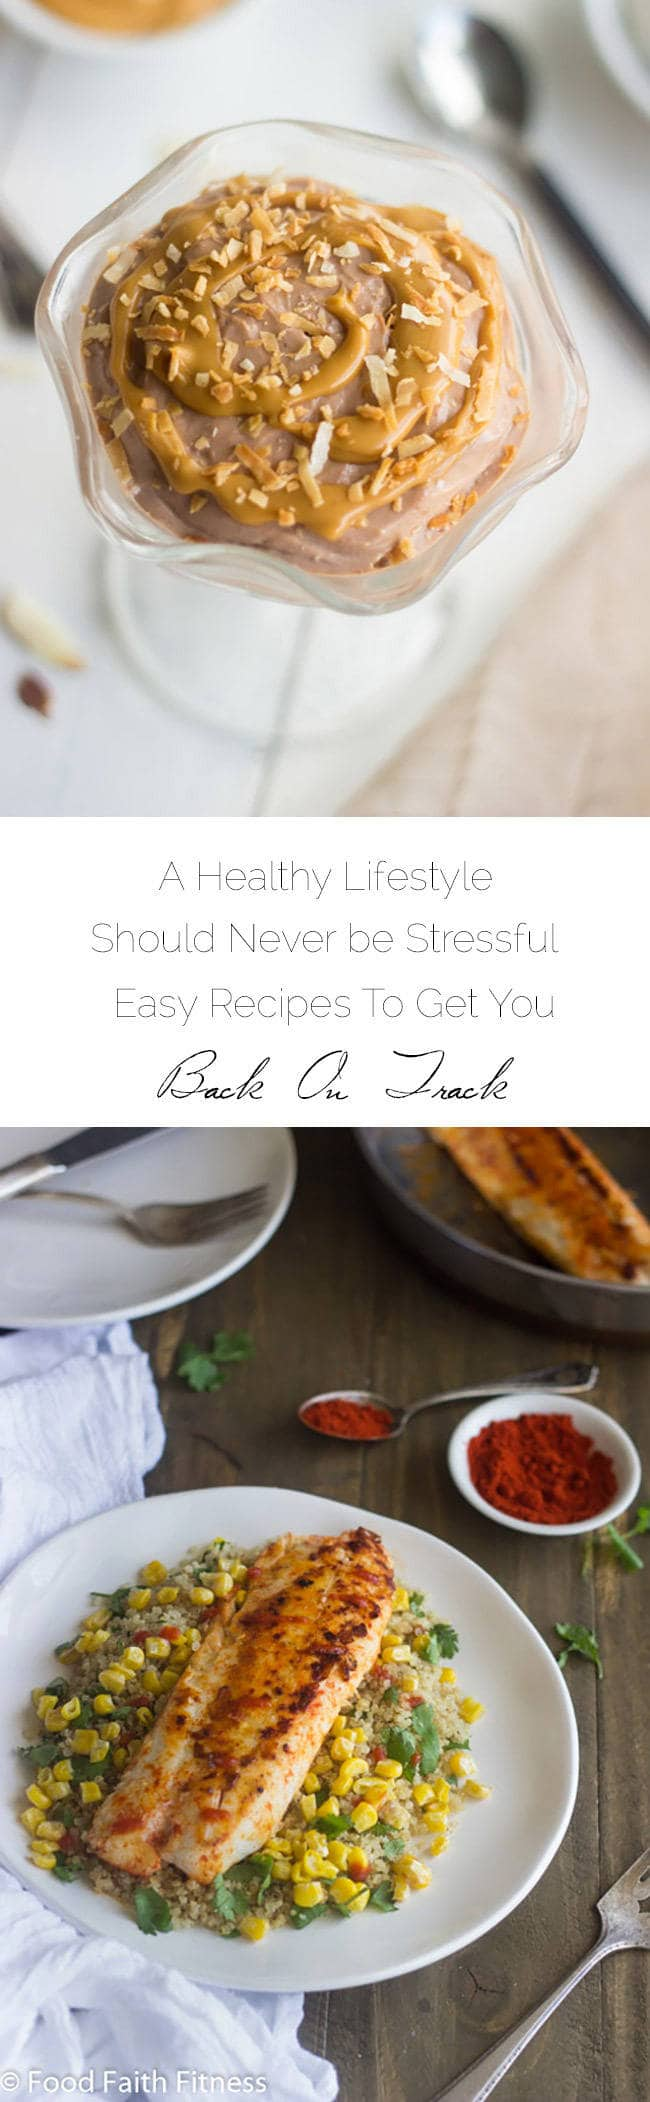 Healthy Eating Should Never Be Stressful - Simple recipes/tips to begin a healthy lifestyle this year! | Foodfaithfitness.com | #recipe